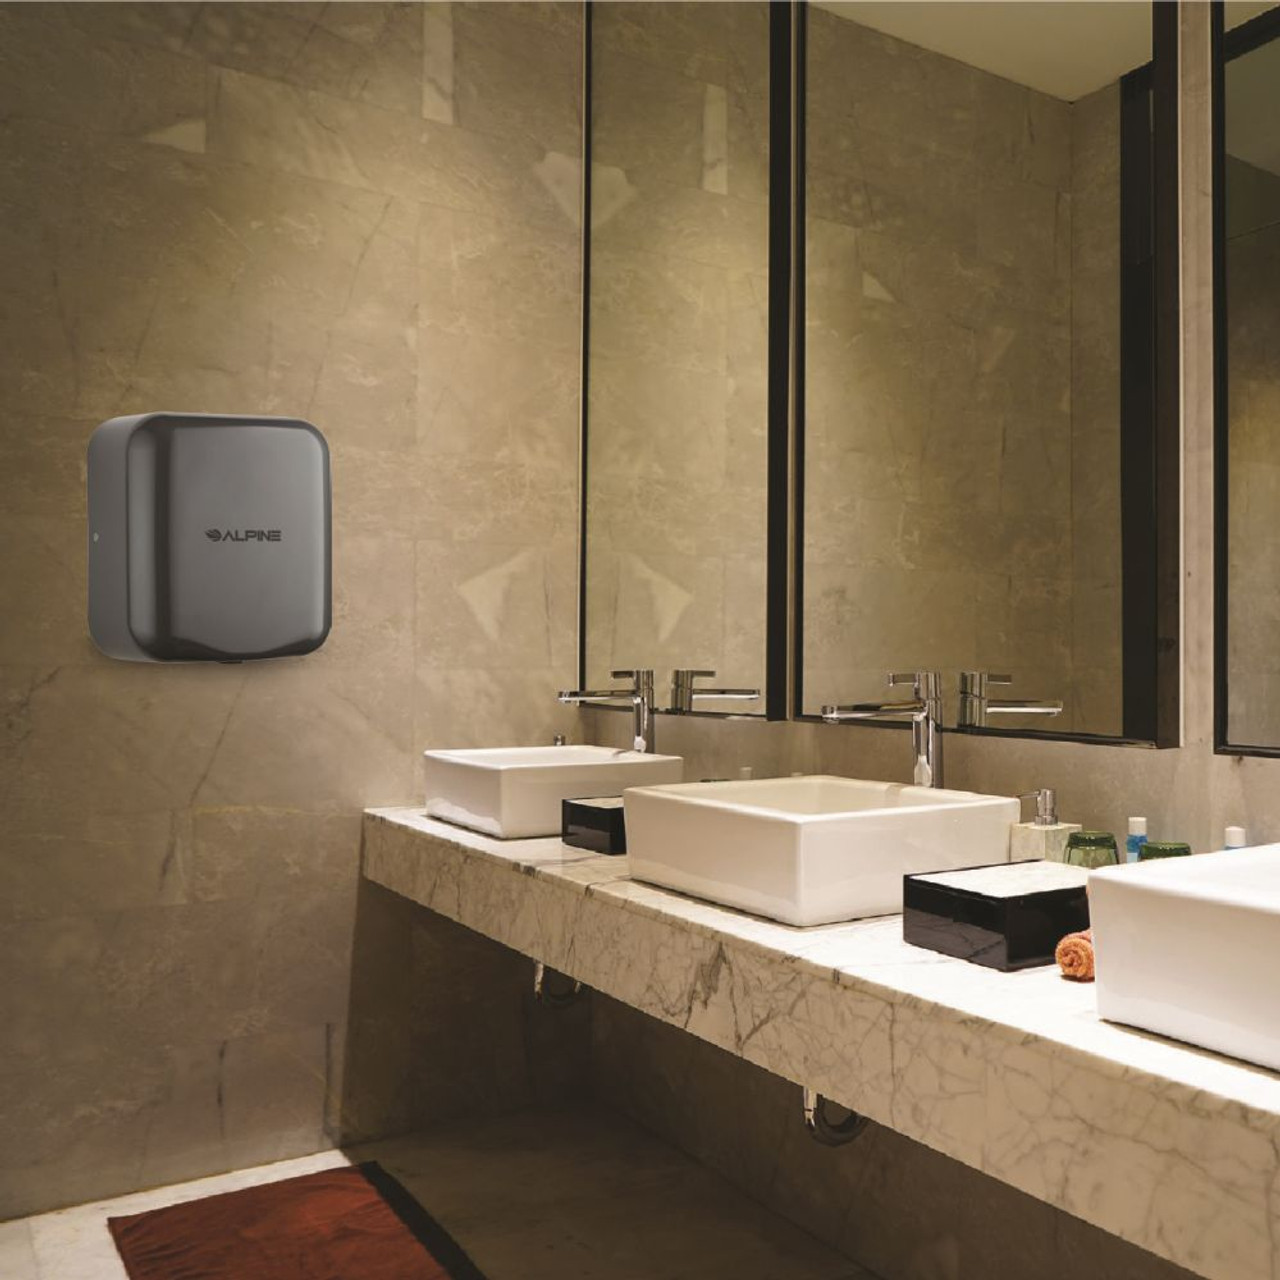 The Hemlock Hand Dryer comes in multiple colors such as Gray.